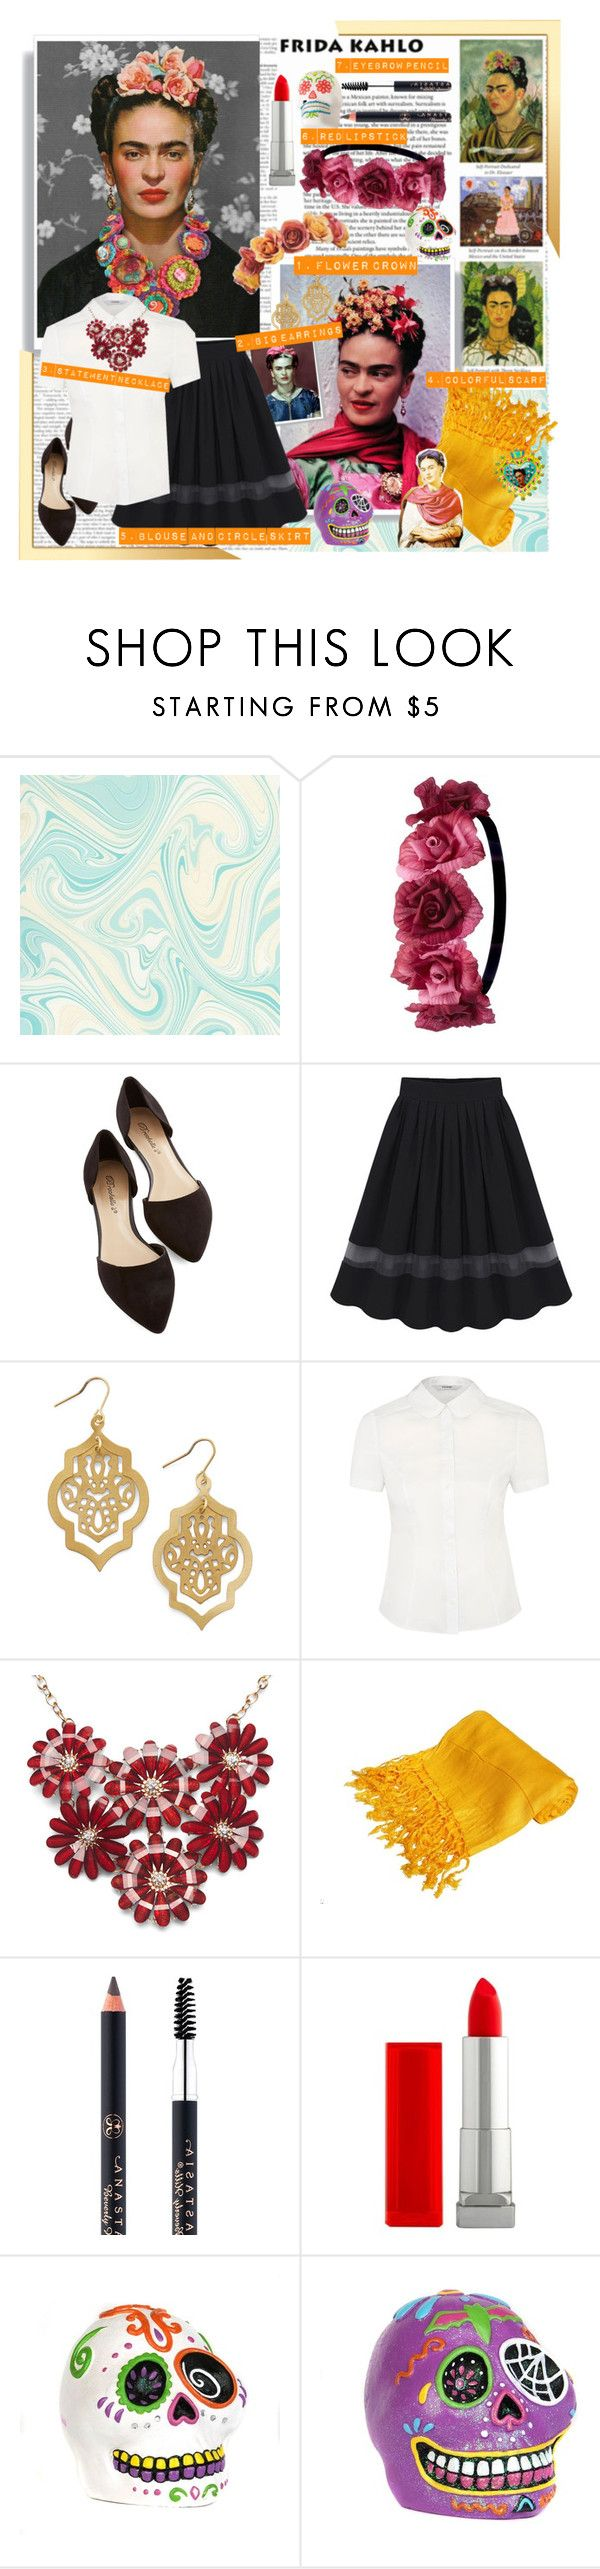 """""""Frida Kahlo DIY Costume"""" by fashionistajane1 ❤ liked on Polyvore featuring Charlotte Russe, Wet Seal, Anastasia, Maybelline and DIYHalloween"""